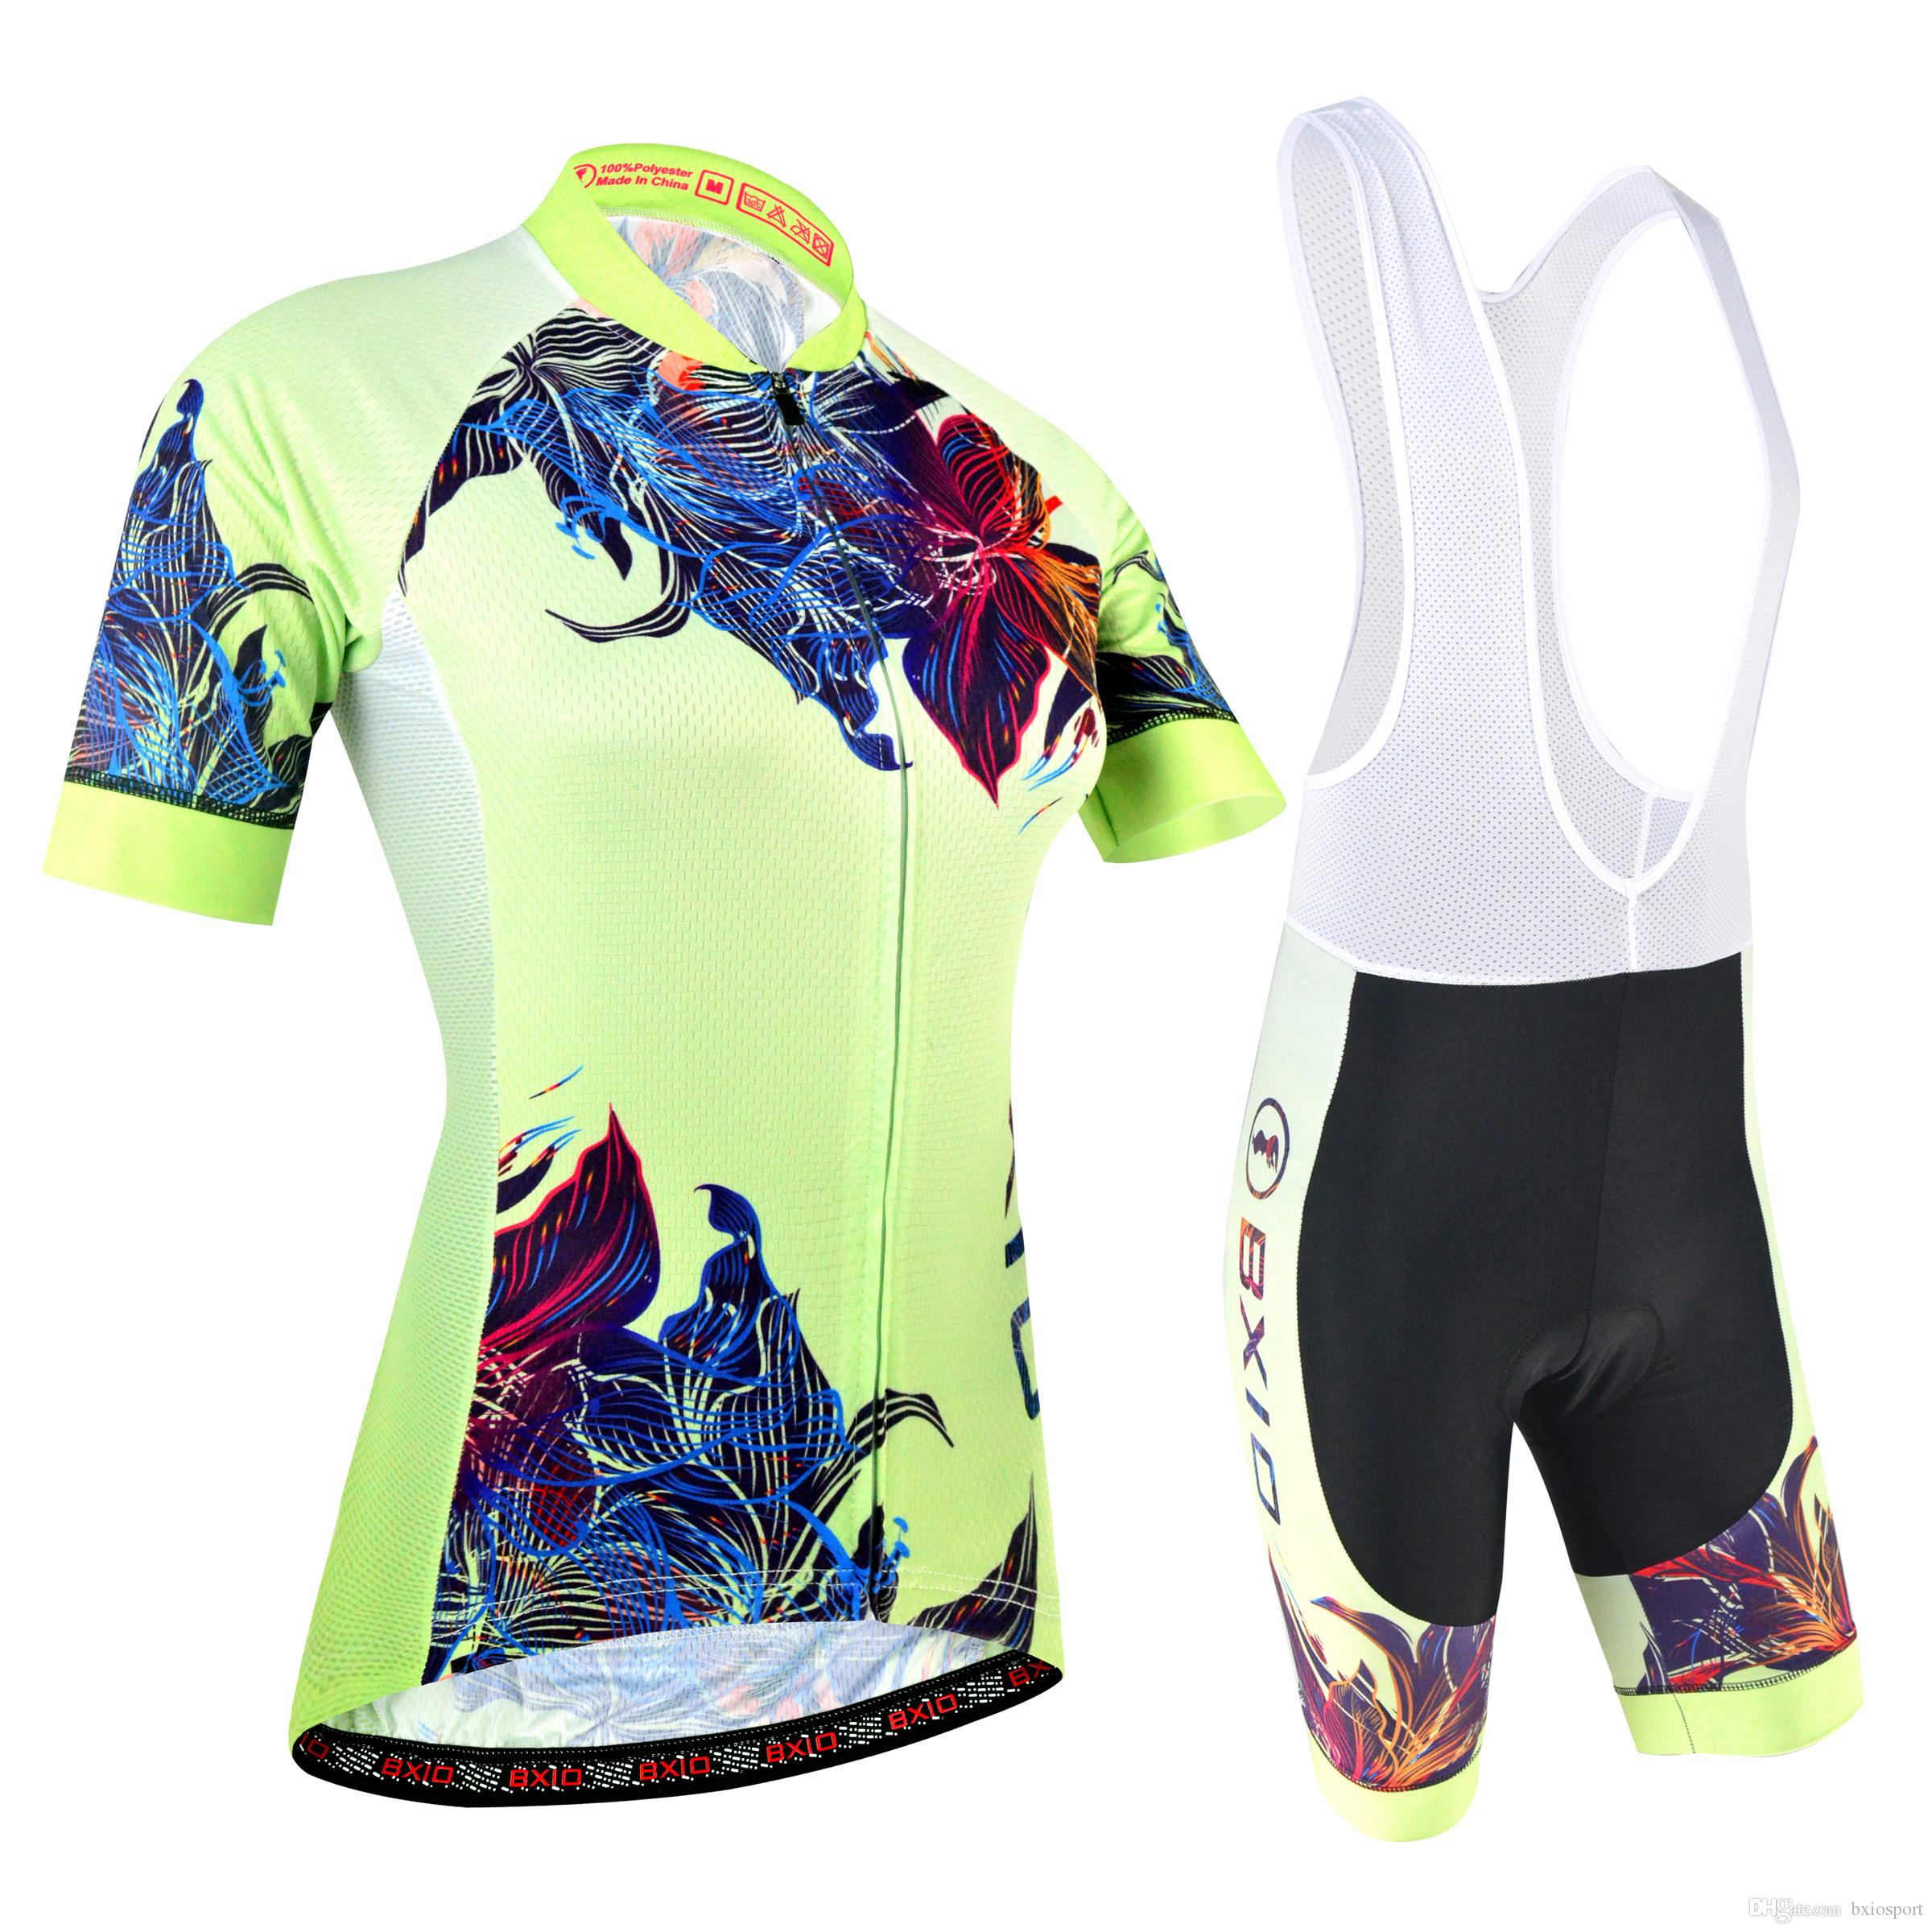 2018 BXIO Brand The Newest Cycling Jersey Women 3 Rear Pockets Bike  Clothing Beautiful Female Bicycle Clothing Ropa Ciclismo Mujeres BX 180  Bicycle Jersey ... 1fa62efa7